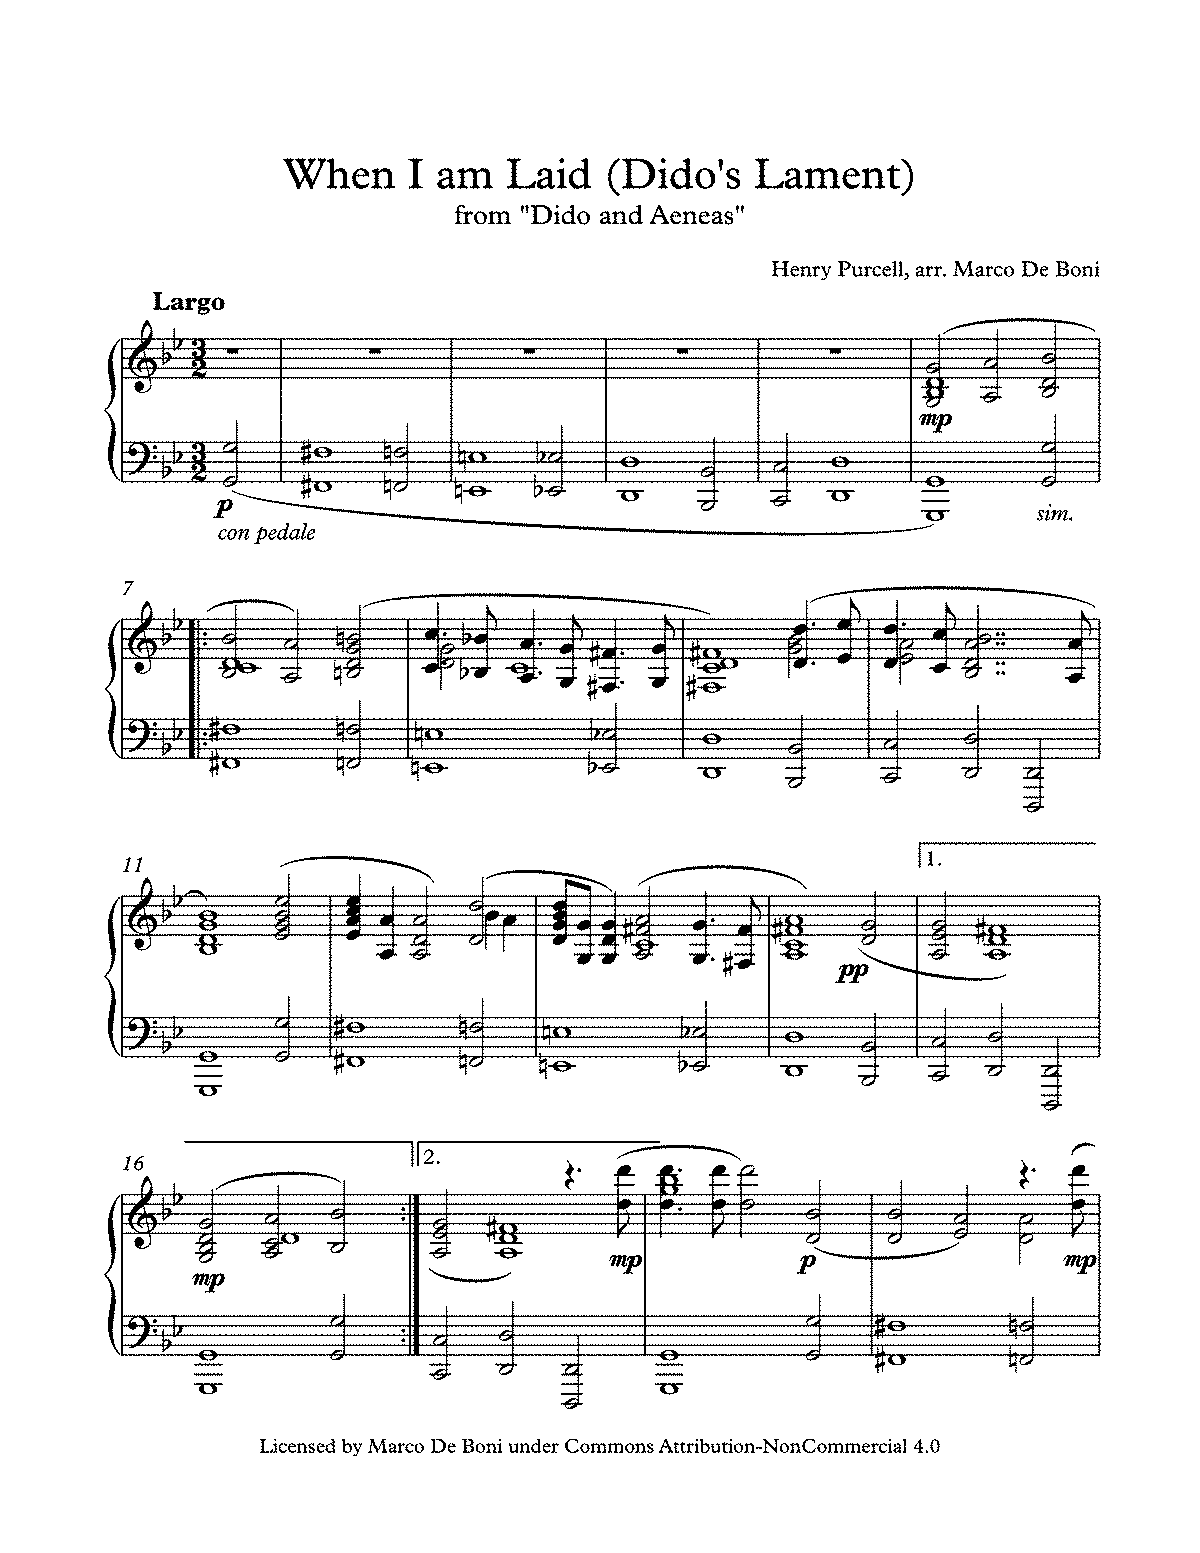 PMLP05472-When I am laid piano arrangement Creative Commons - Full Score.pdf